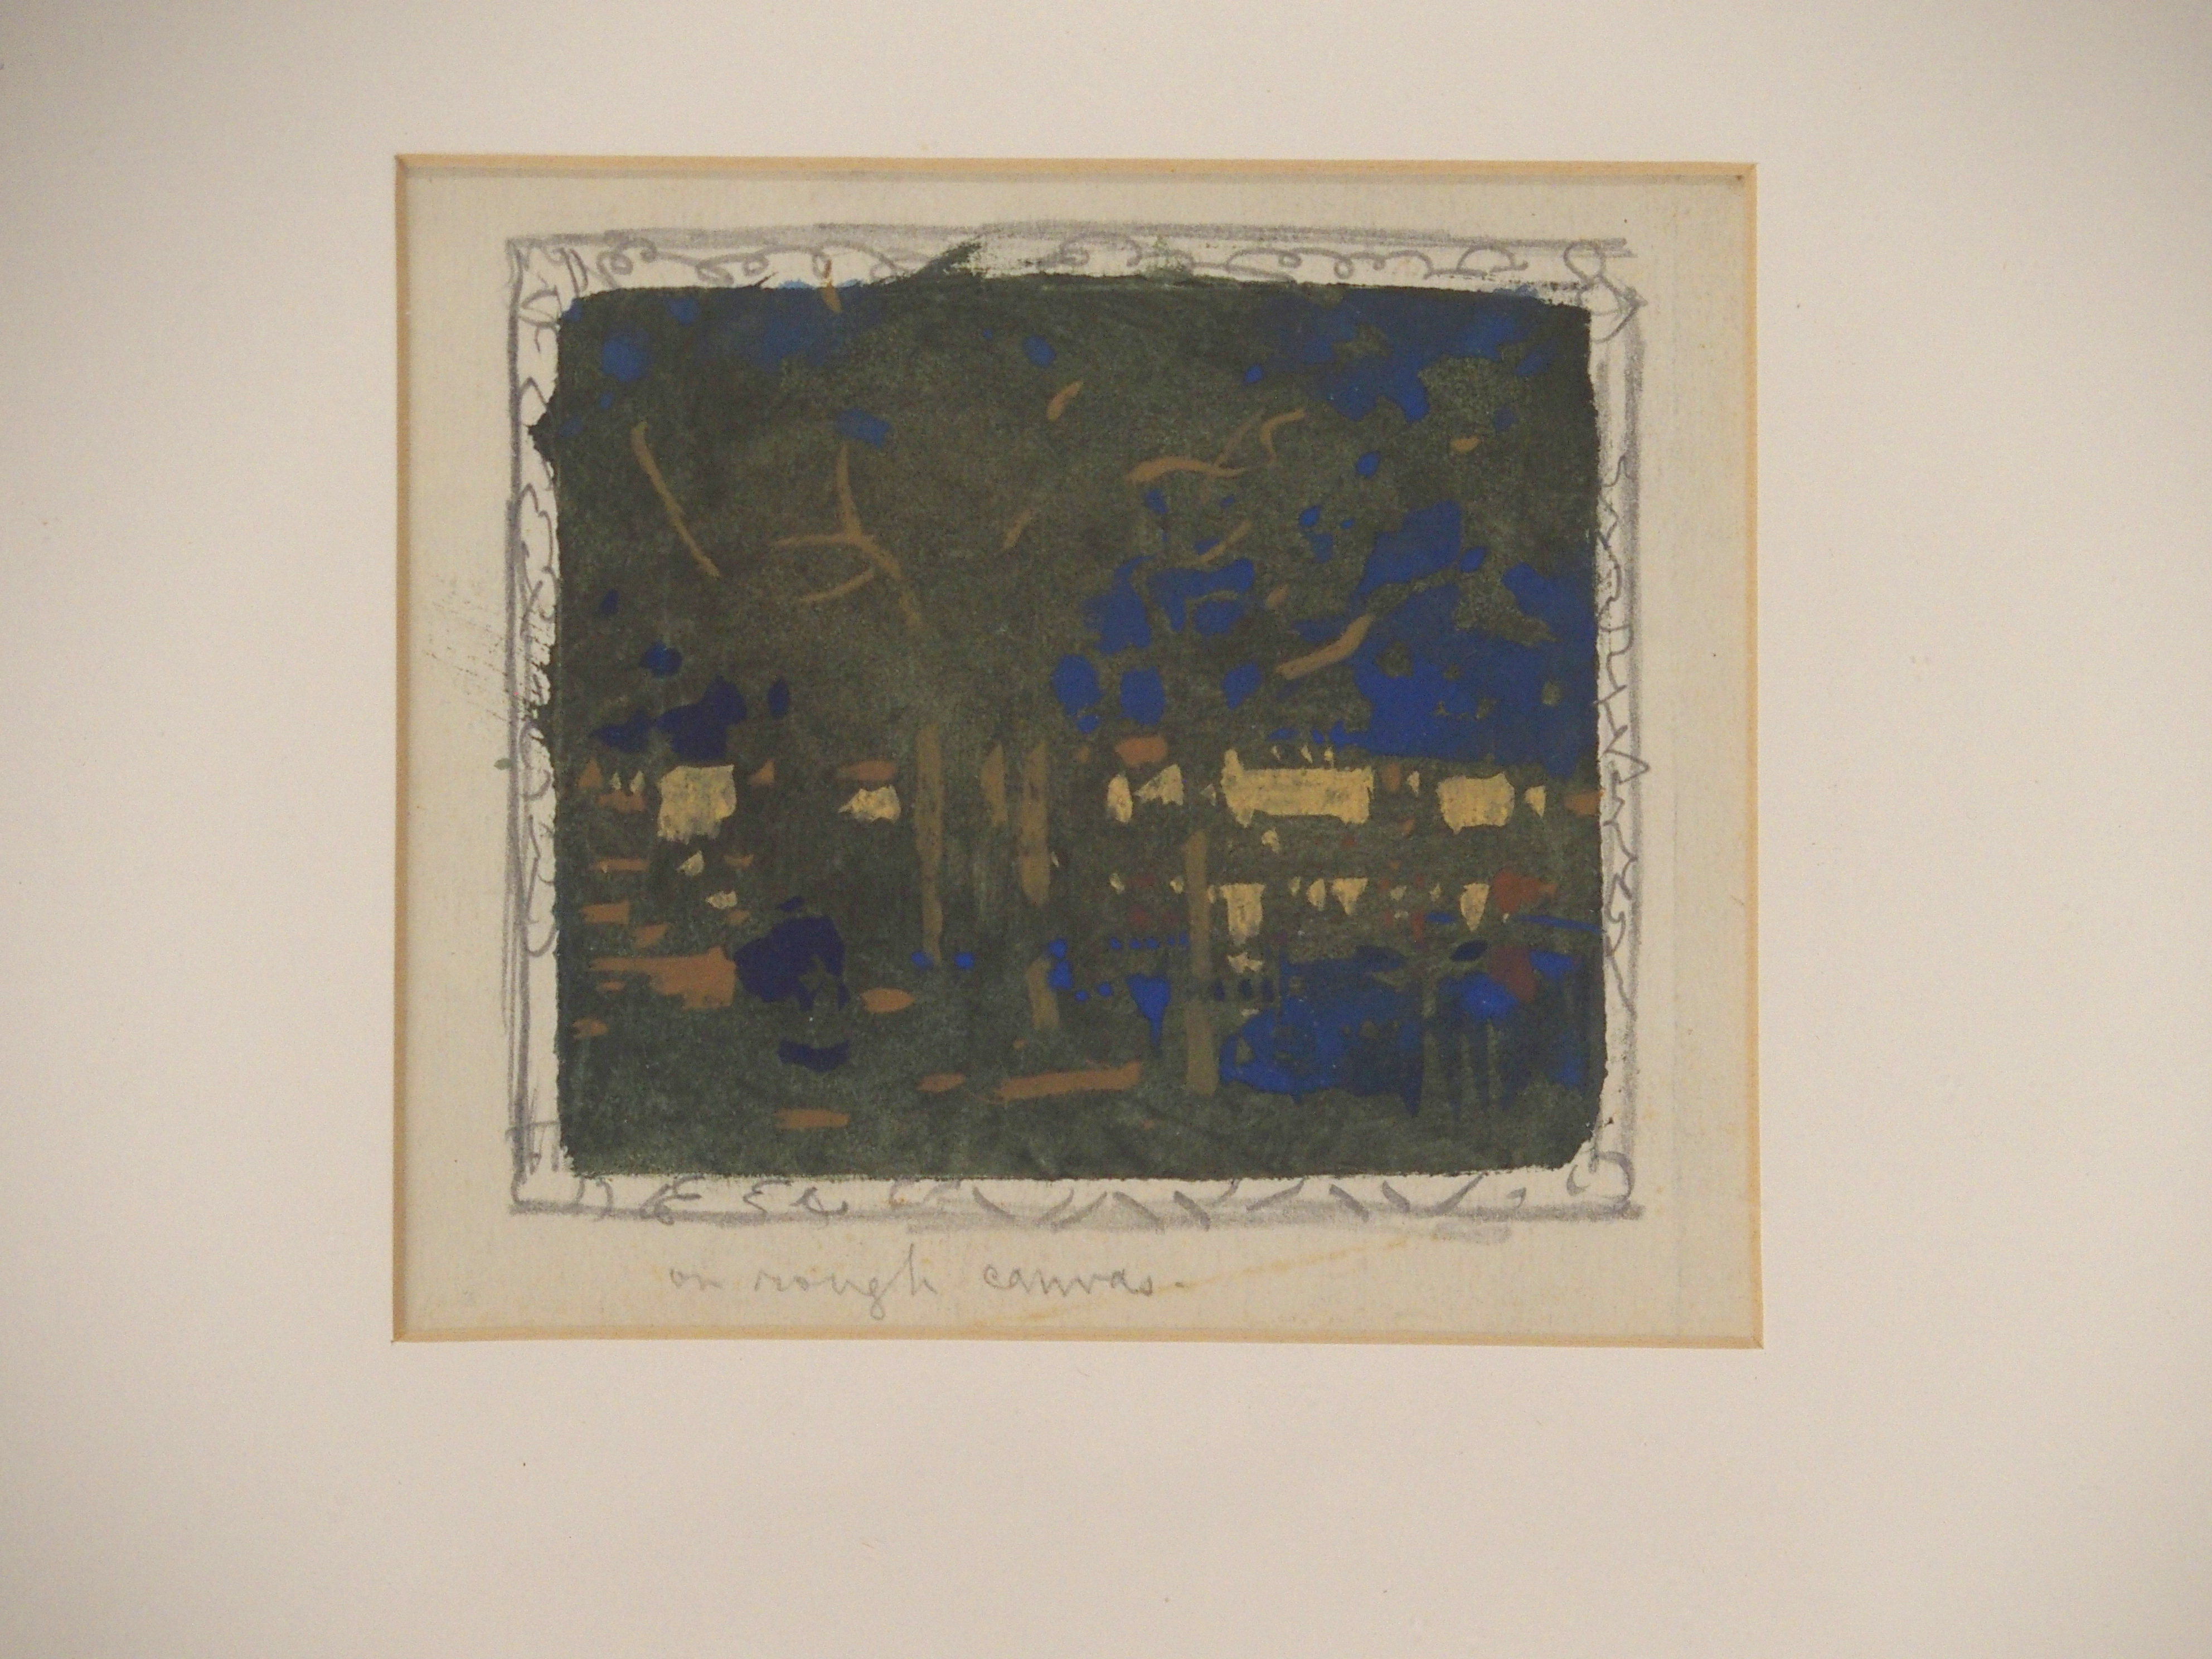 GEORGE DUTCH DAVIDSON (ENGLISH 1879-1901) TREES AND BUILDINGS gouache, 12 x 12cm Condition Report: